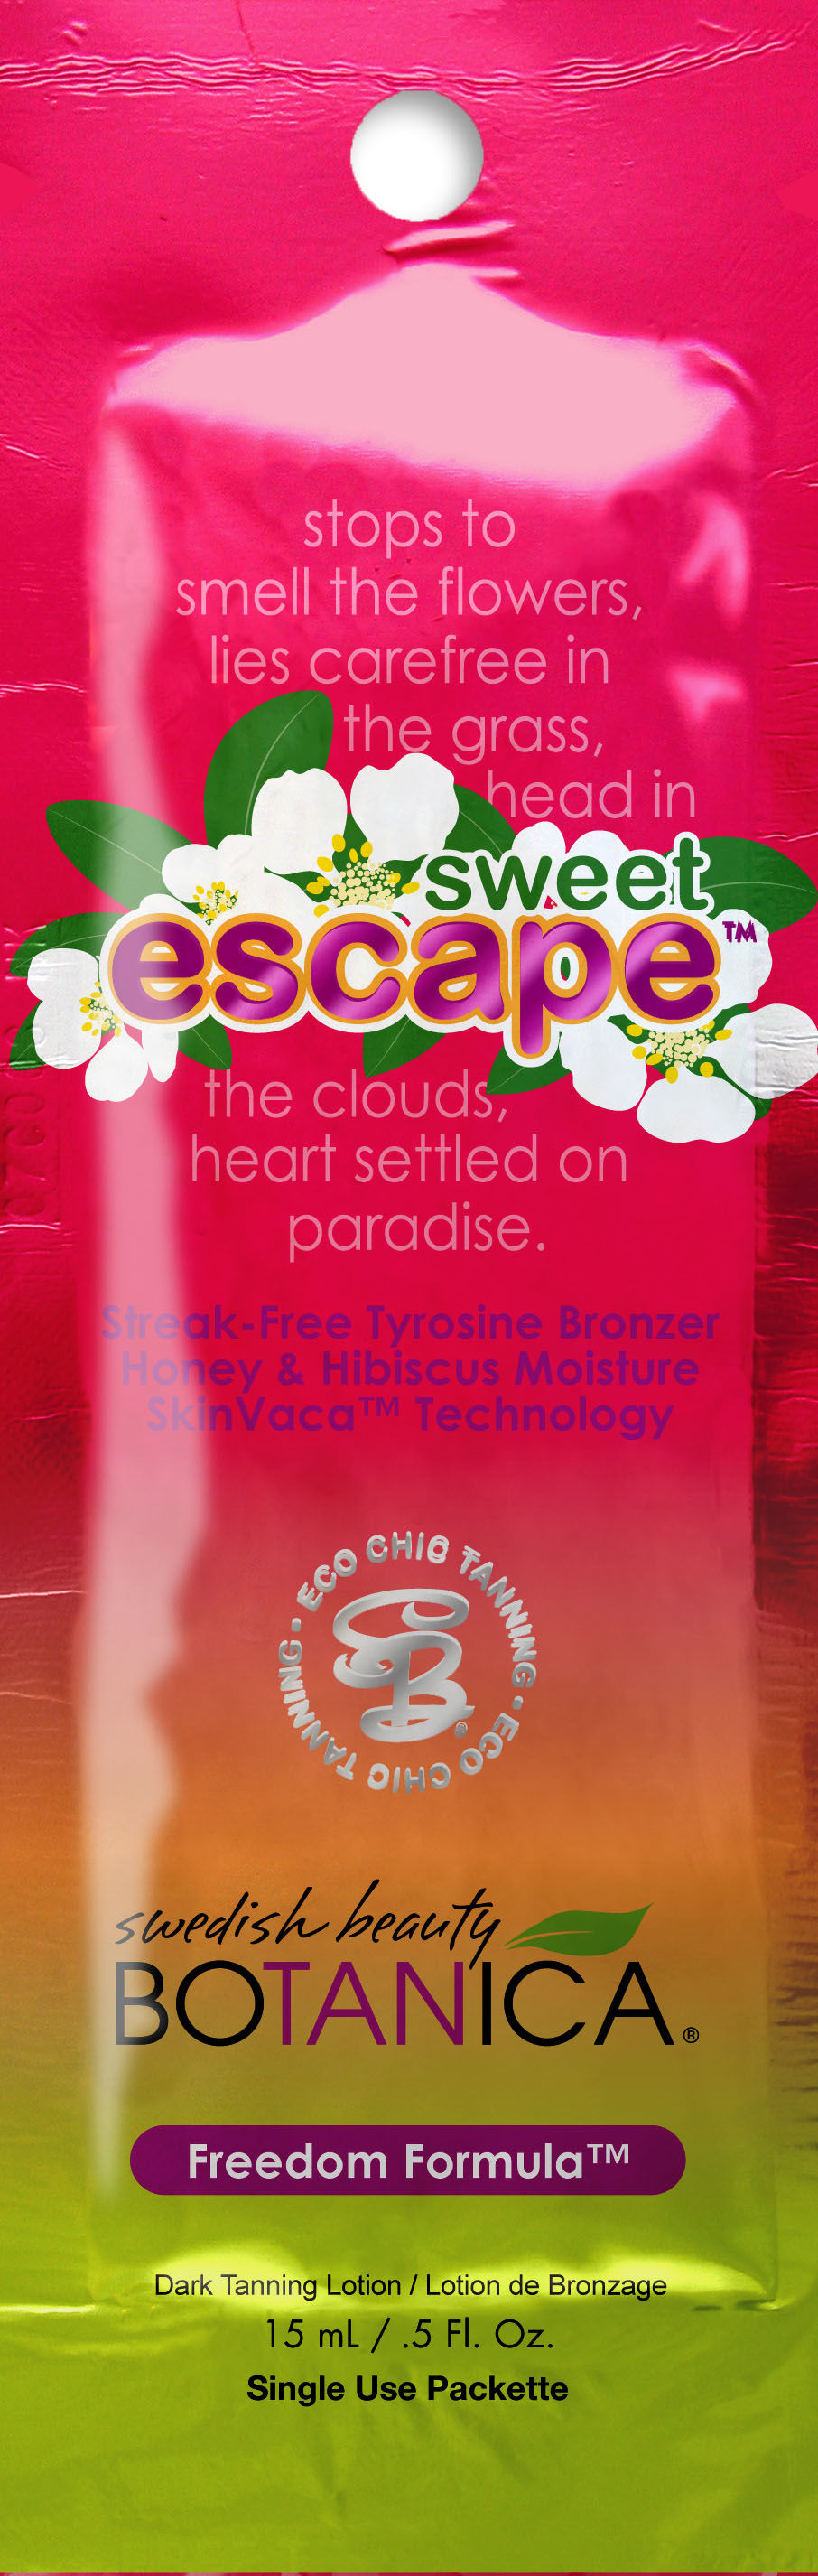 Sweet Escape™ Streak-Free Tyrosine Bronzer with Honey & Hibiscus Moisture